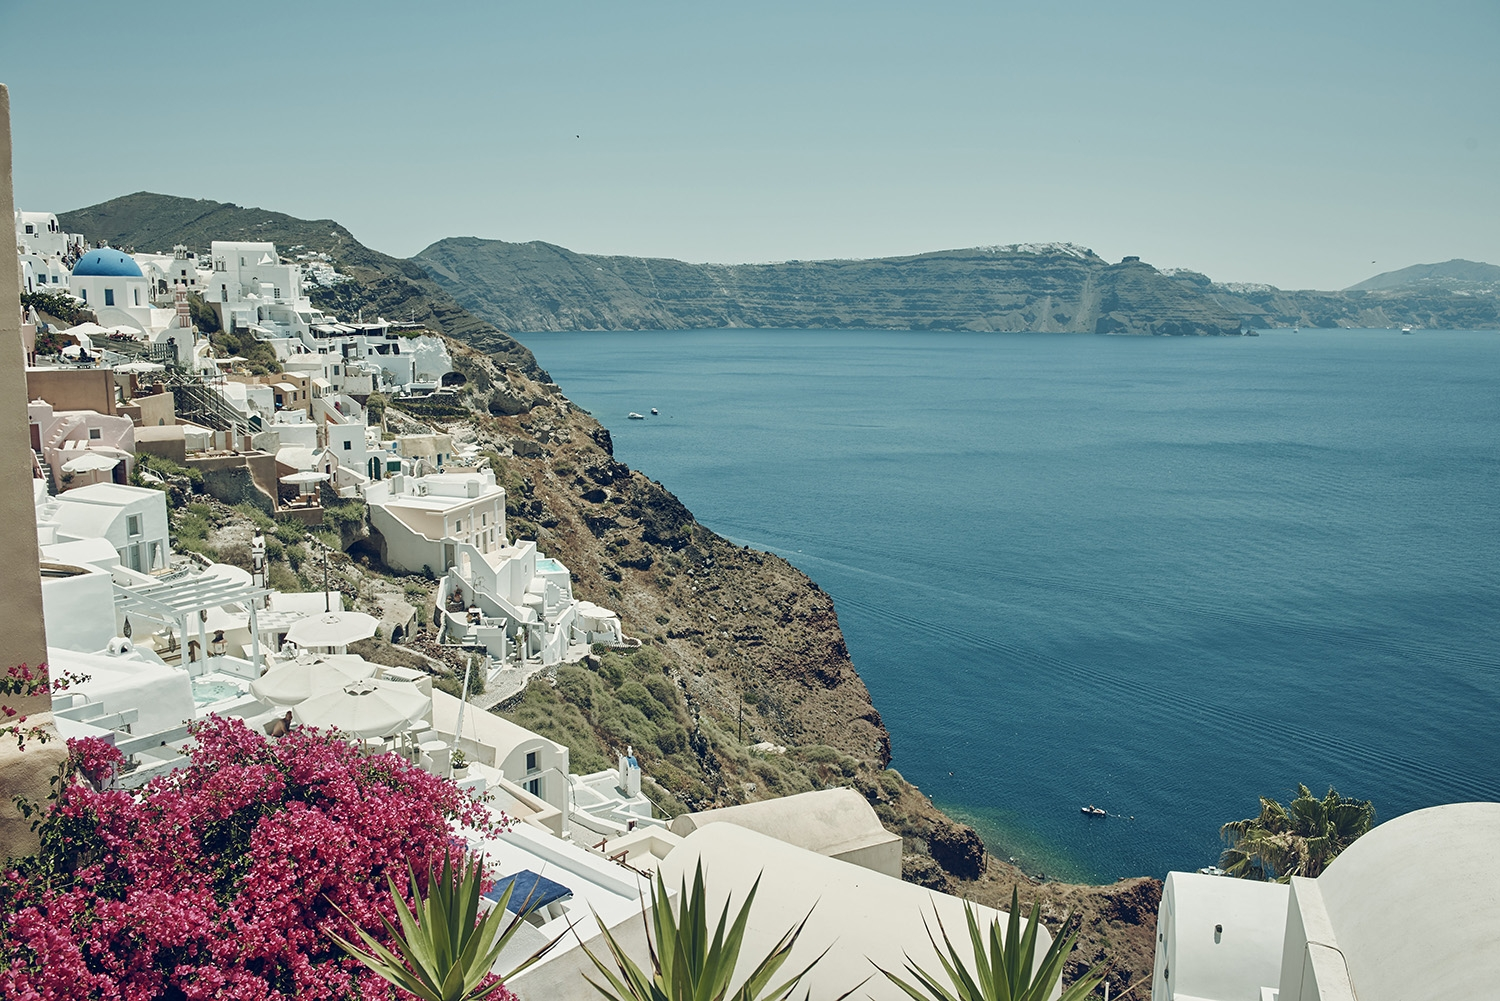 White buildings line the cliffside and look down to the deep blue sea below